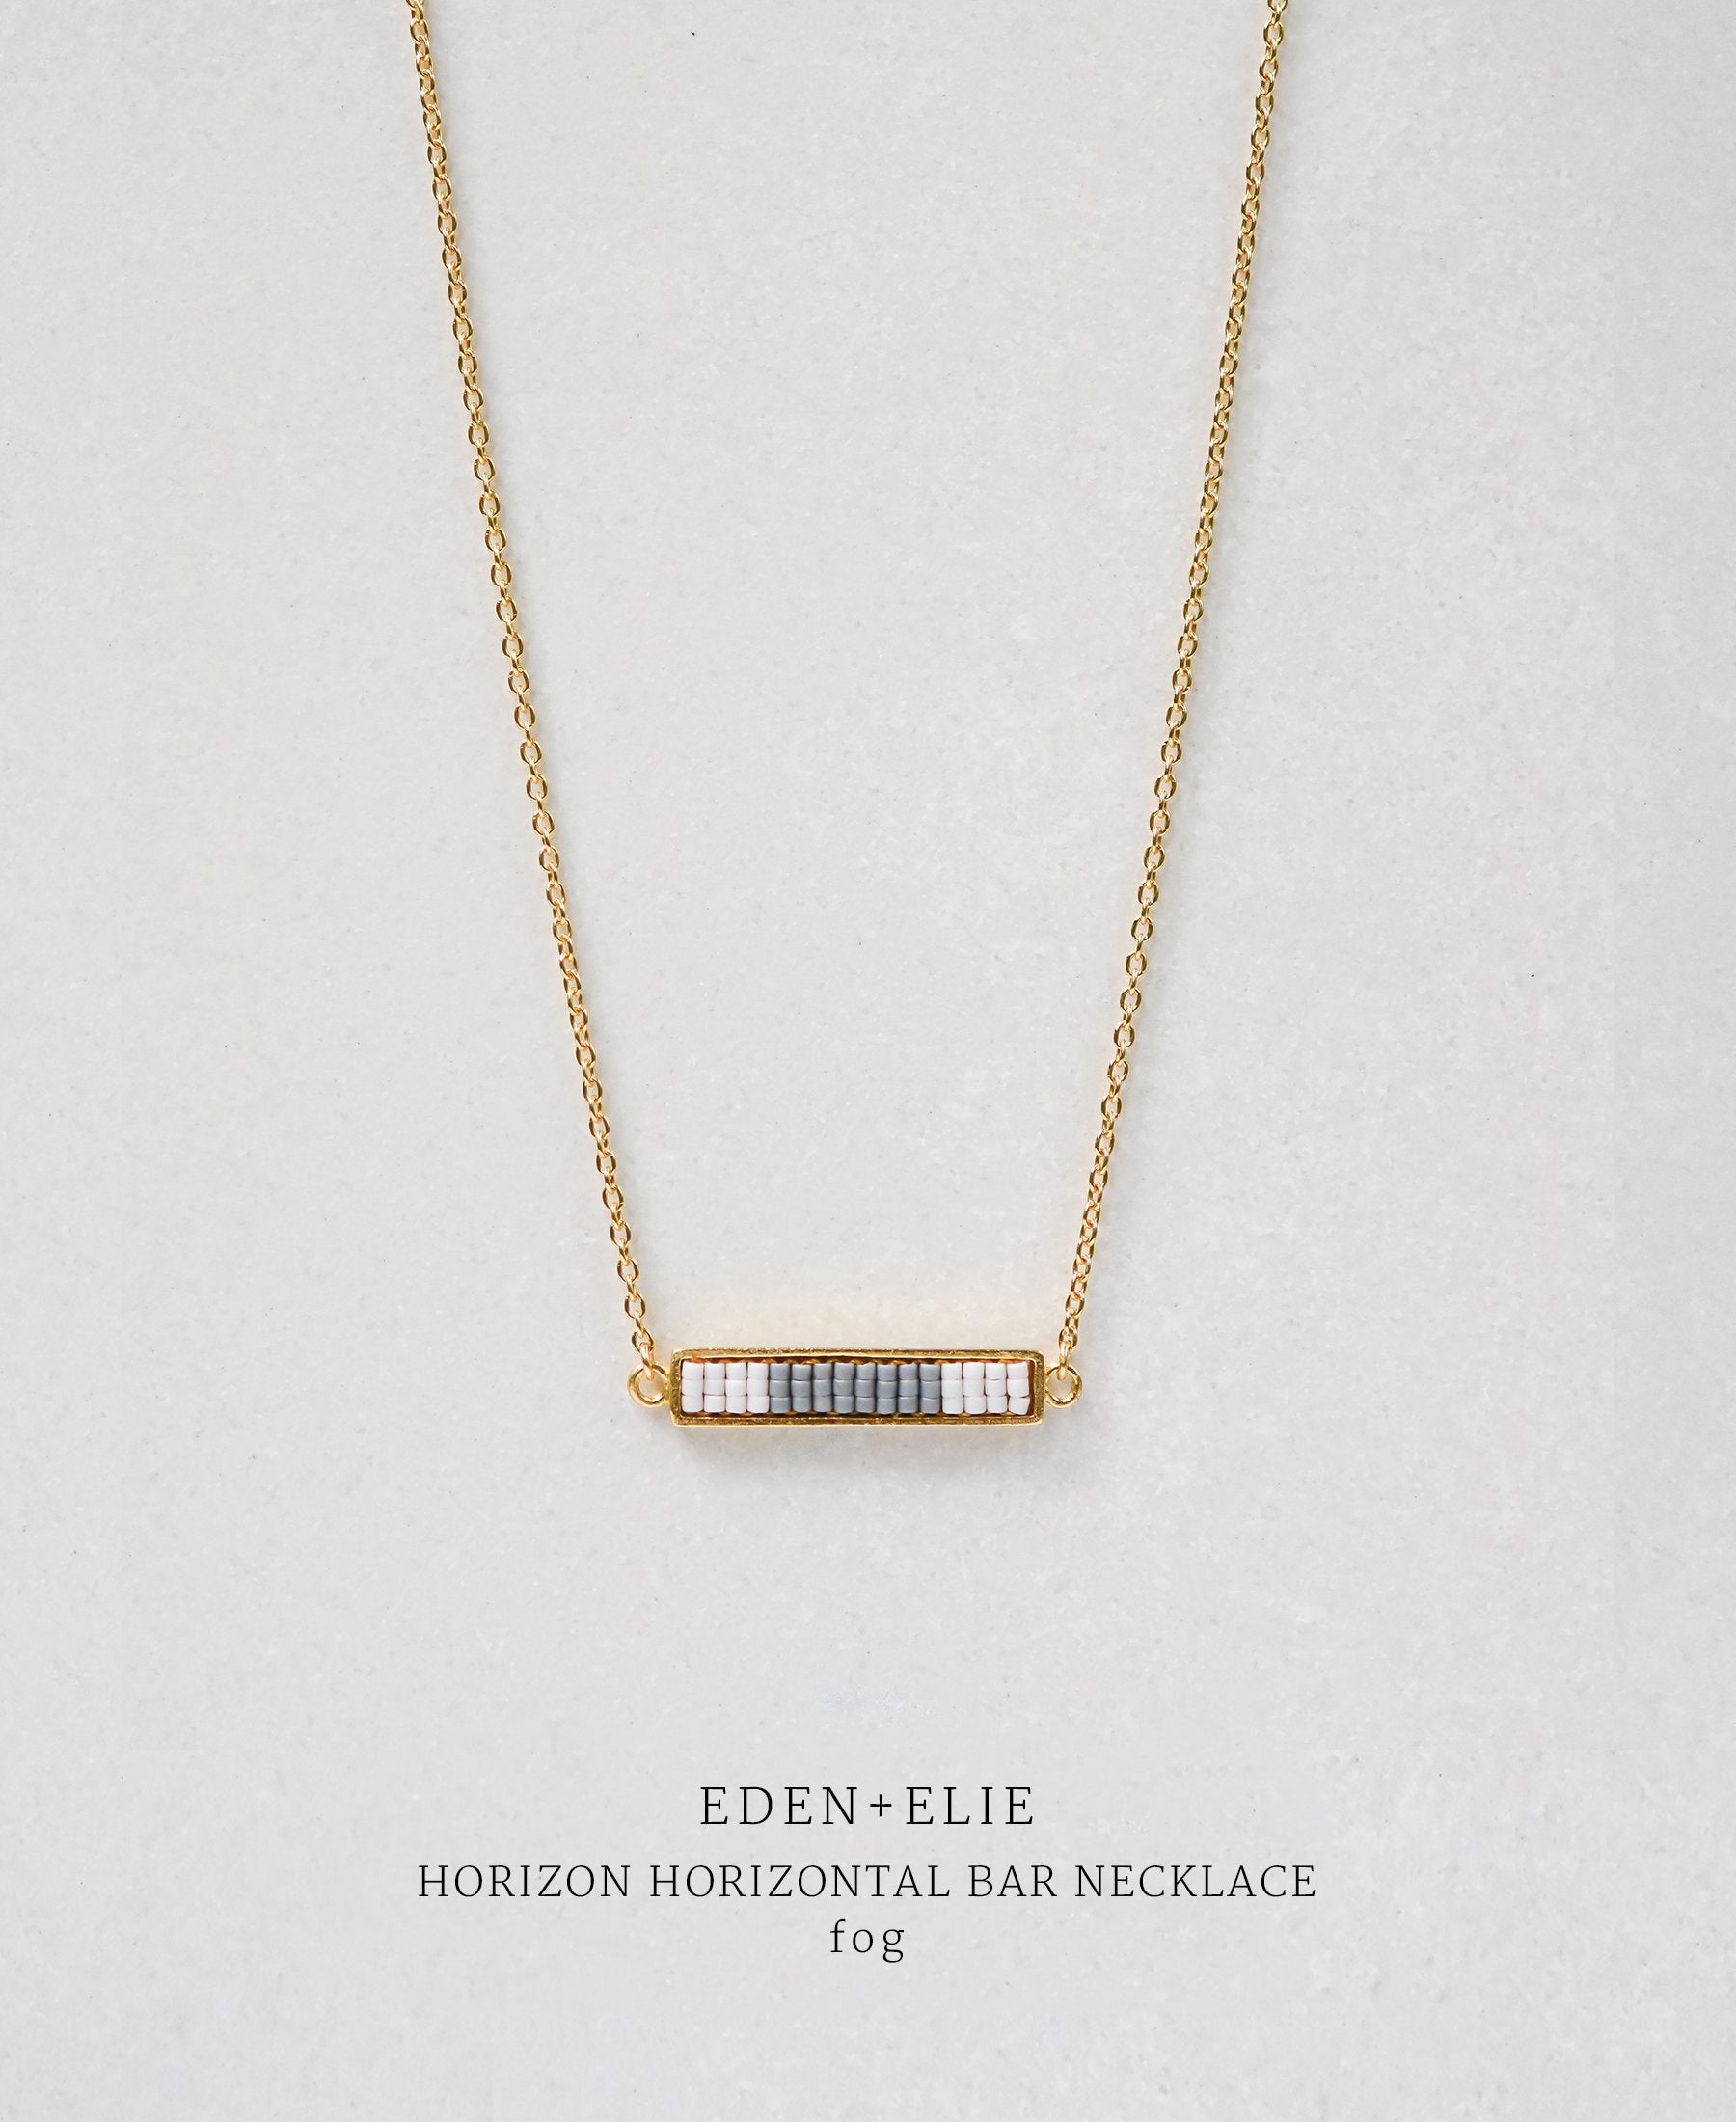 EDEN + ELIE Horizon Horizontal bar necklace - fog grey